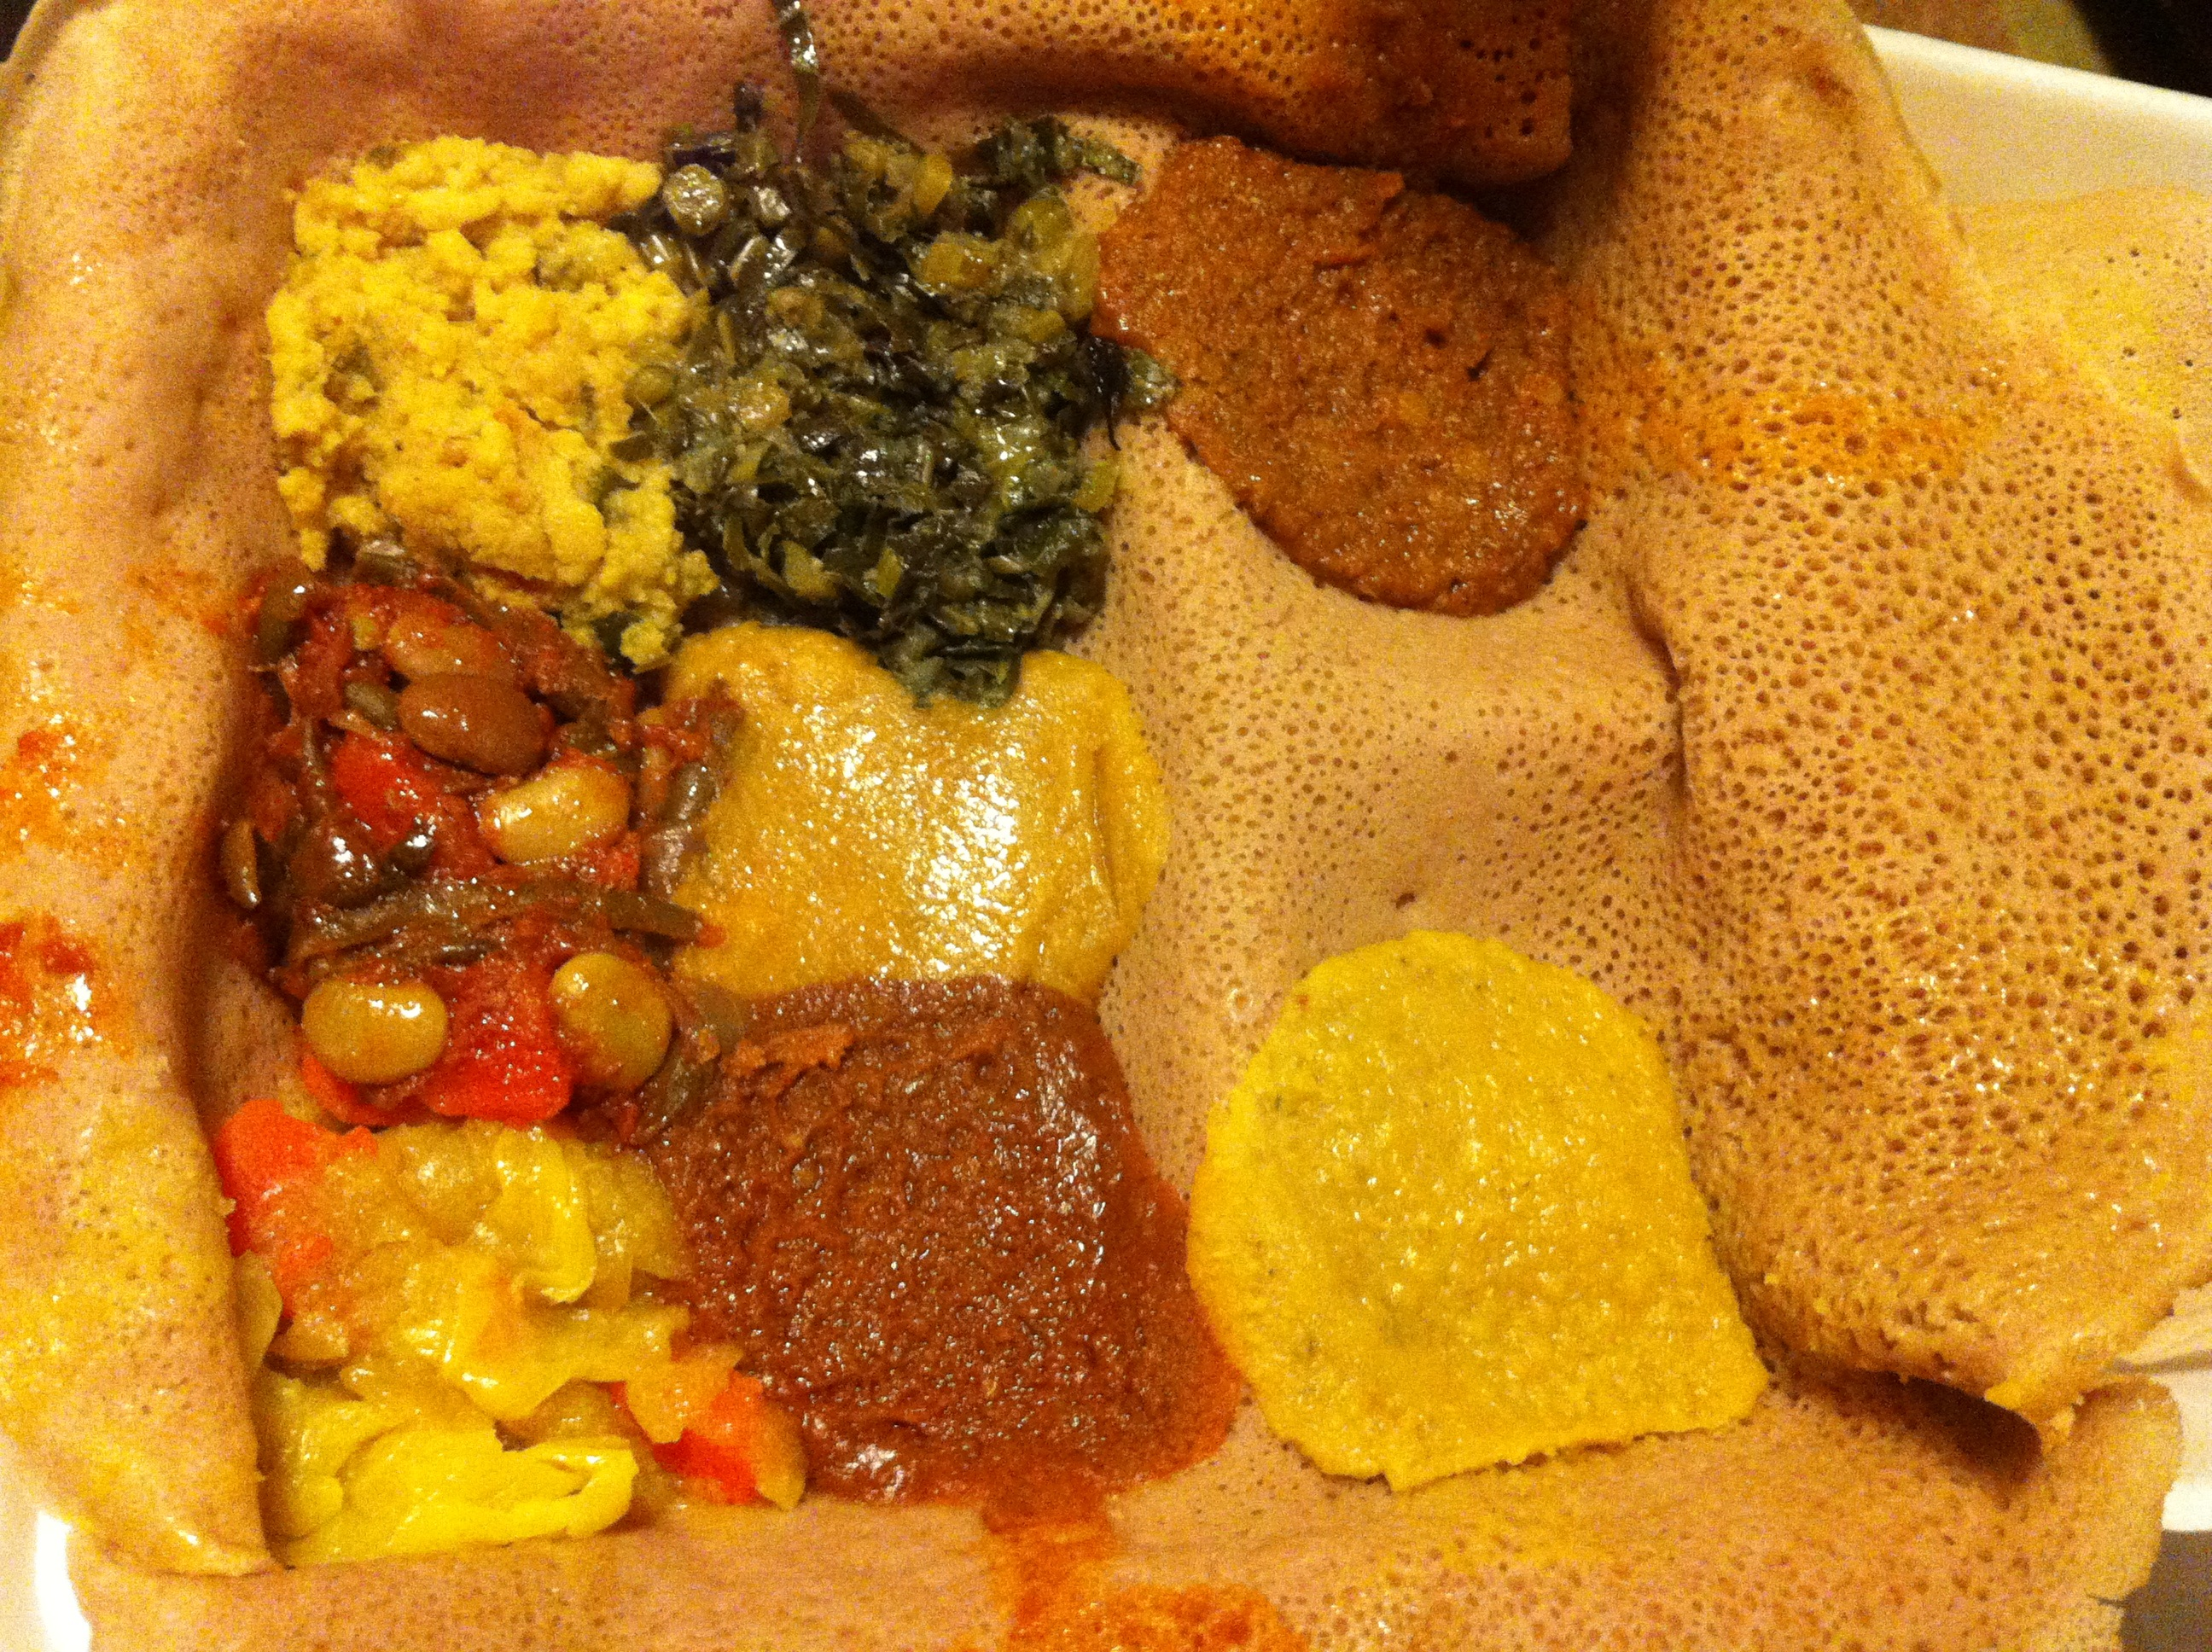 Ethiopian cuisine in NYC - part of my new mission of trying a different cuisine each week and making my way around the globe (even if literally from this one island!)